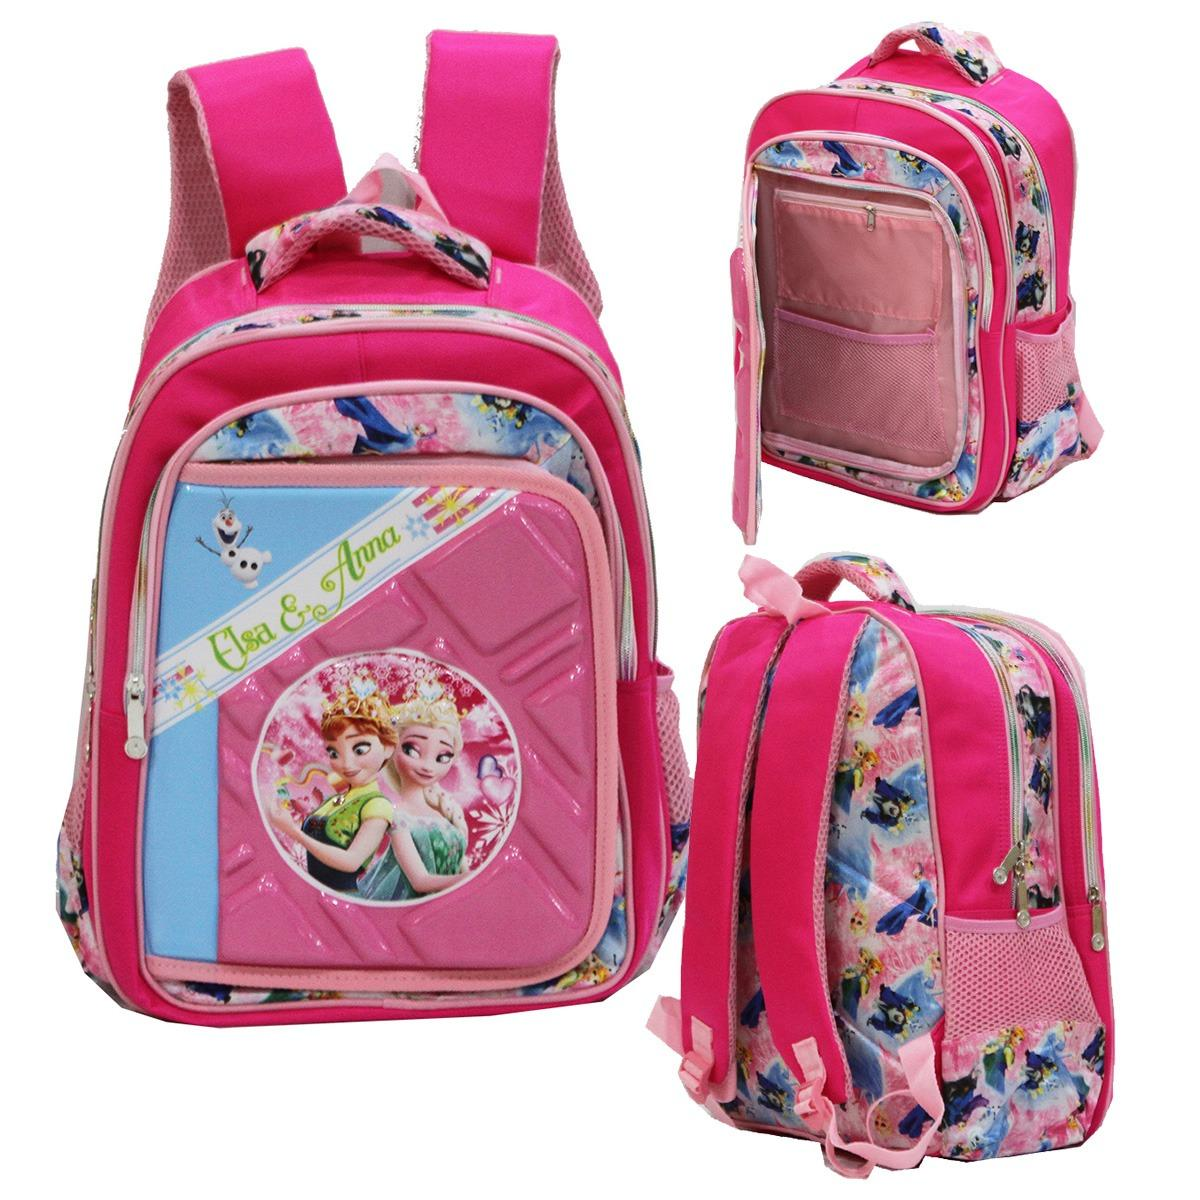 Review Onlan Disney Frozen 6D Timbul Ransel Big Bag Sch**l Import Pink Terbaru